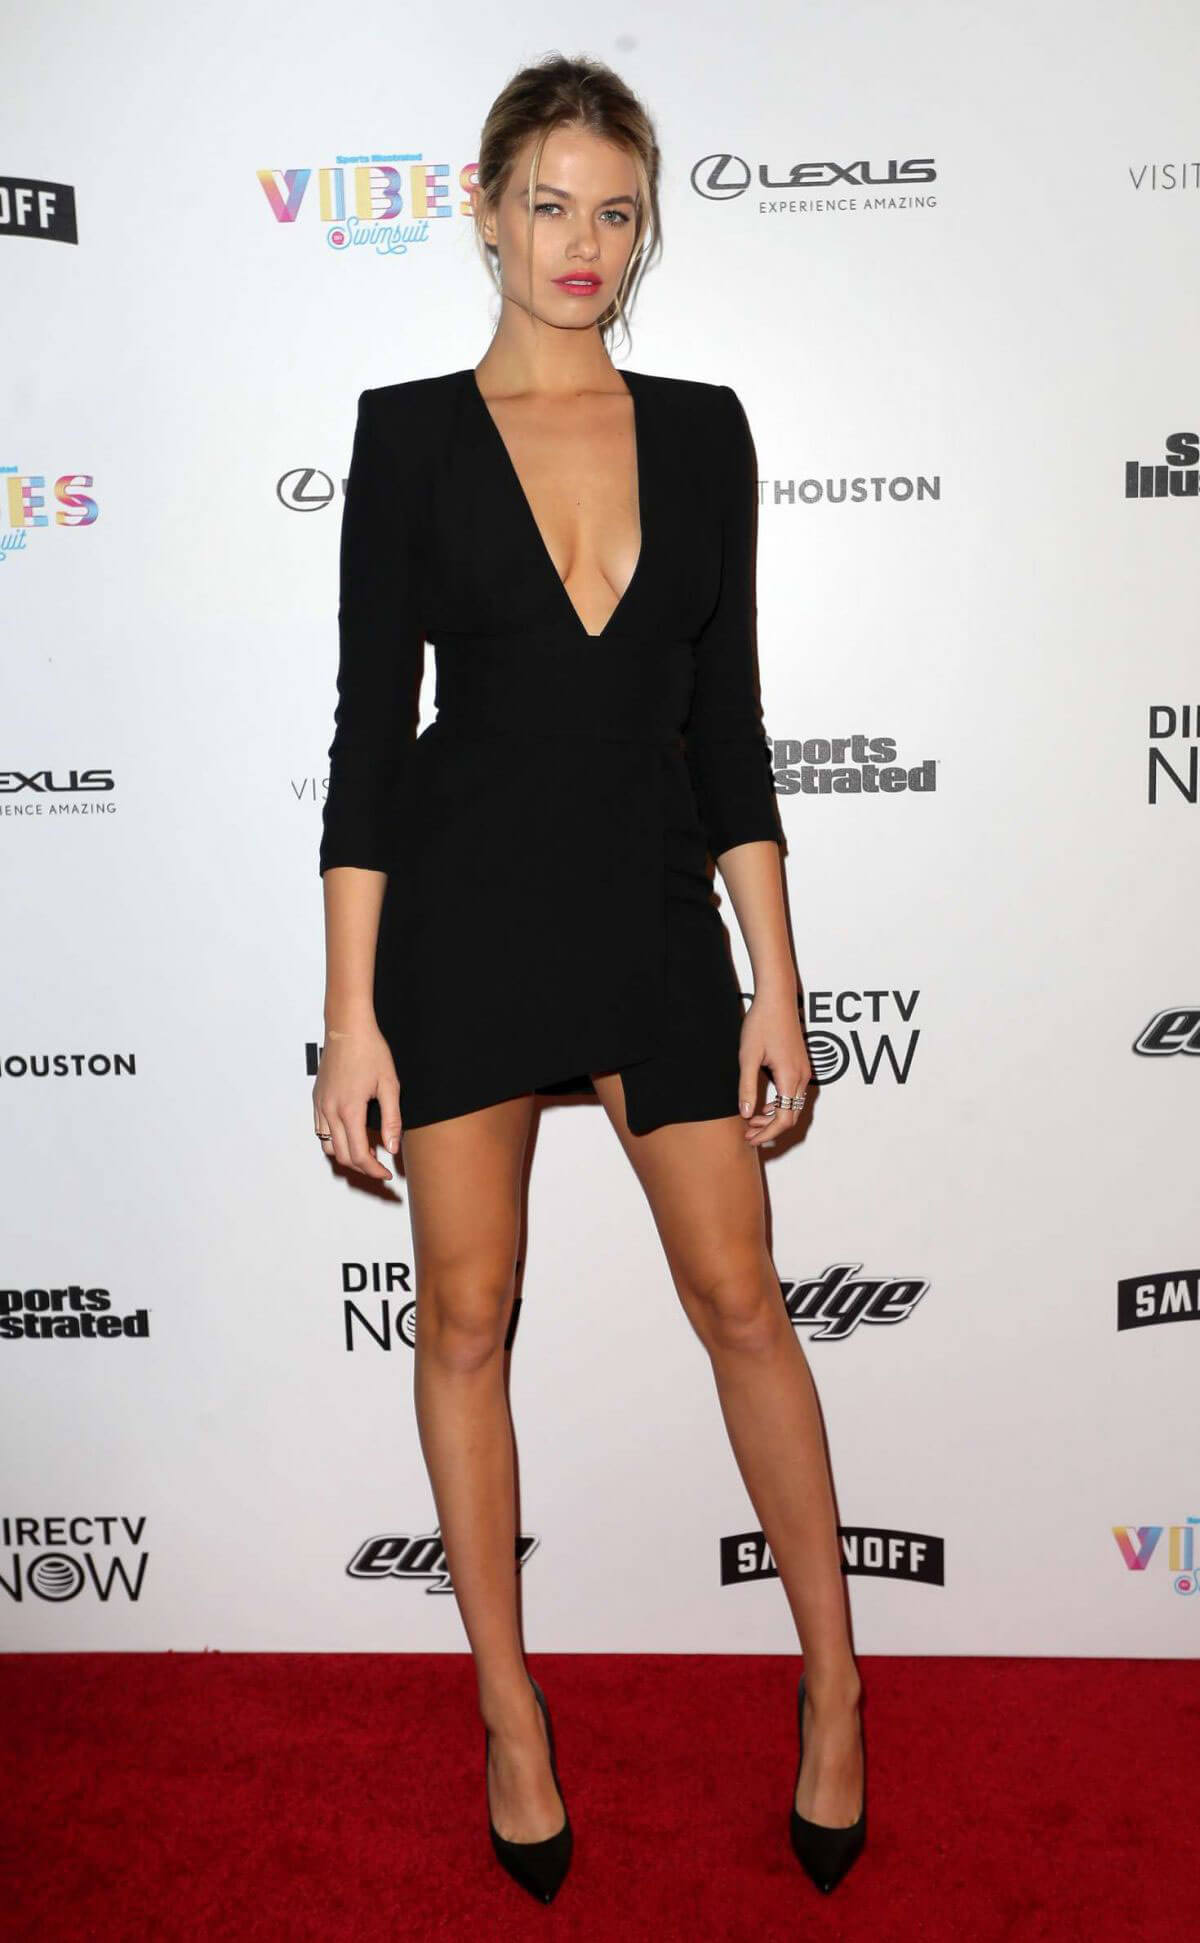 Hailey Clauson Stills at Vibes by SI Swimsuit 2017 Launch Festival in Houston